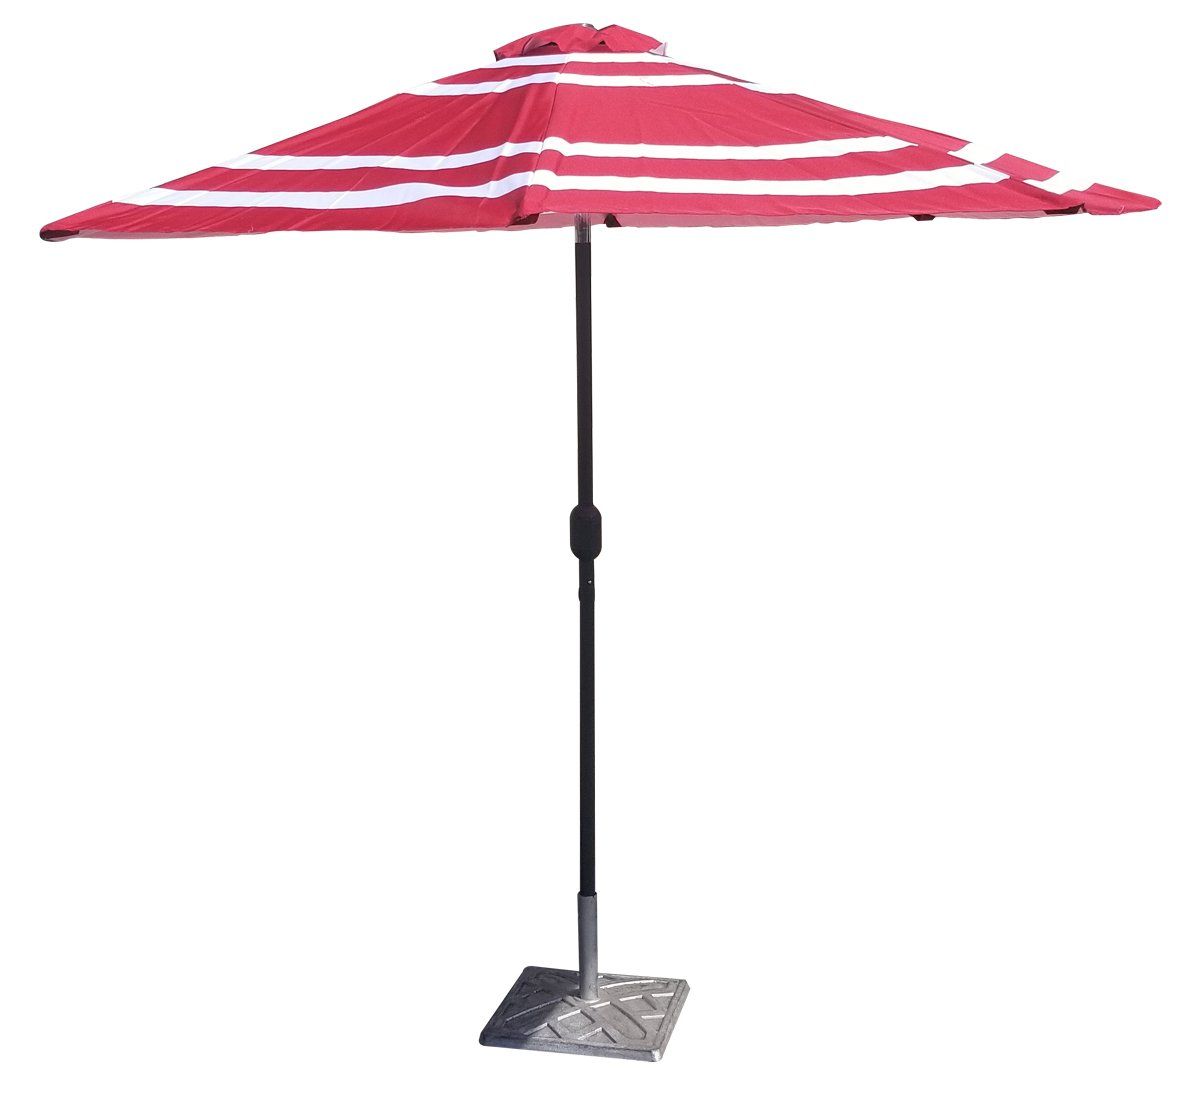 0d8563507 Amazon.com : VMI 9' Wide Striped Aluminum Adjustable Umbrella with Crank,  Red and White : Garden & Outdoor